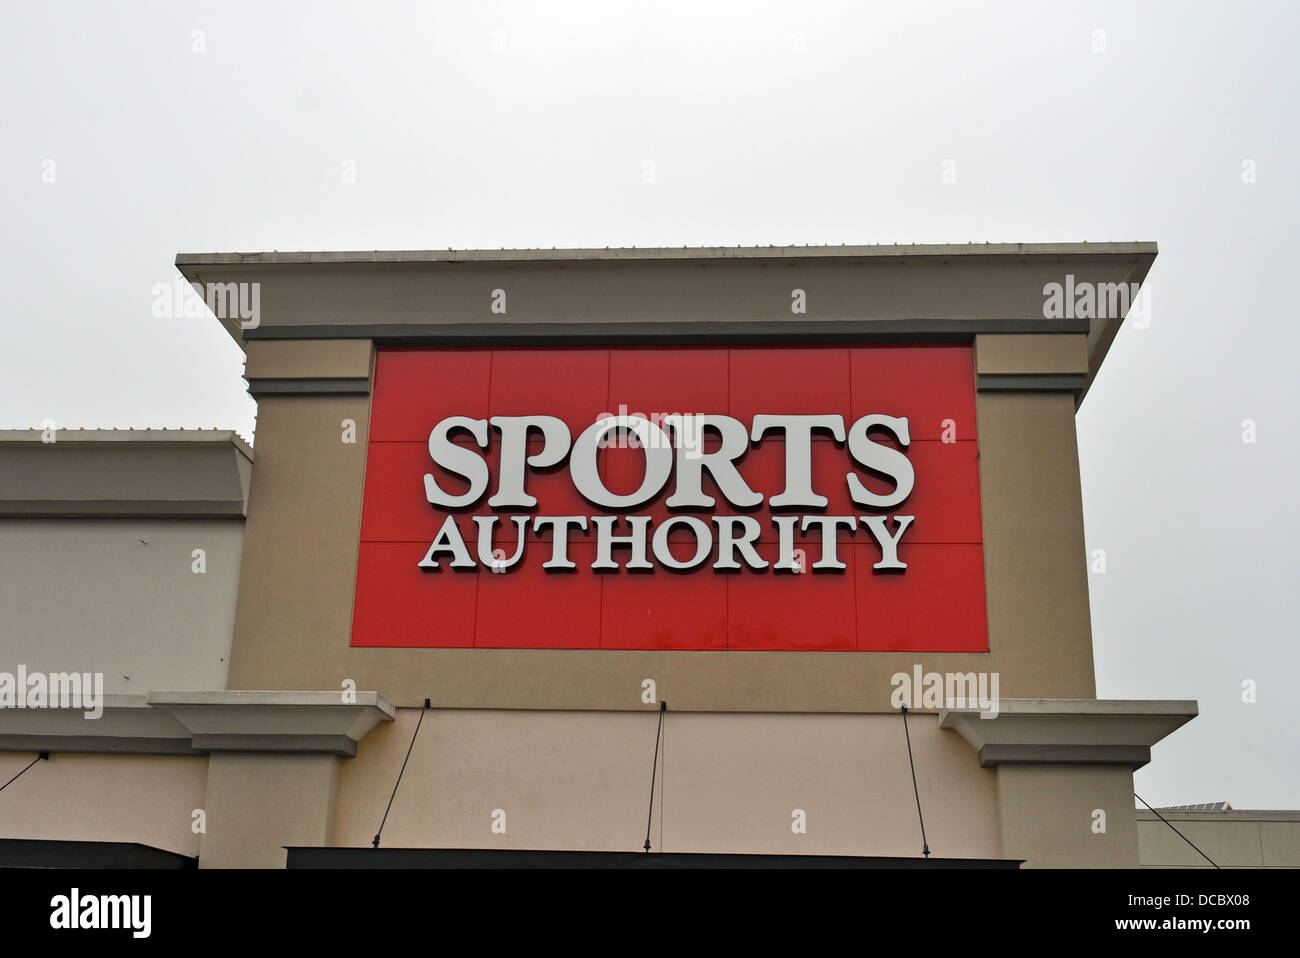 Sports authority store sign Photo Stock